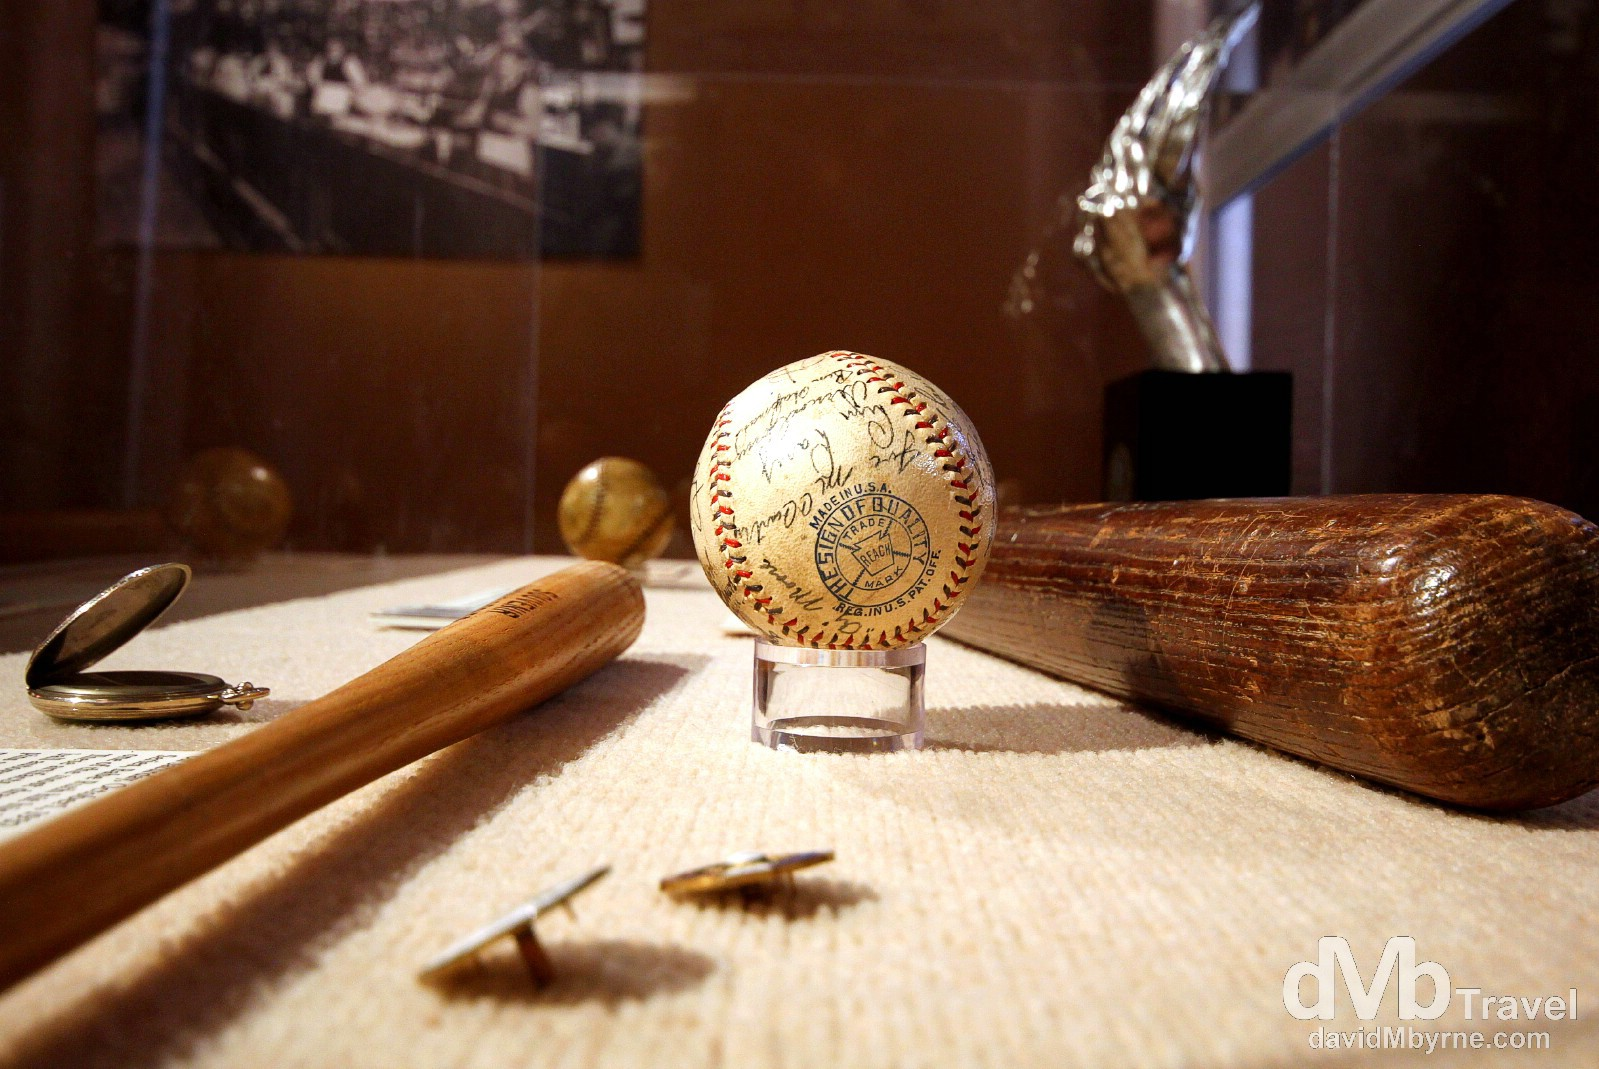 Babe Ruth Birthplace Museum, Baltimore, Maryland, USA. July 11th 2013.